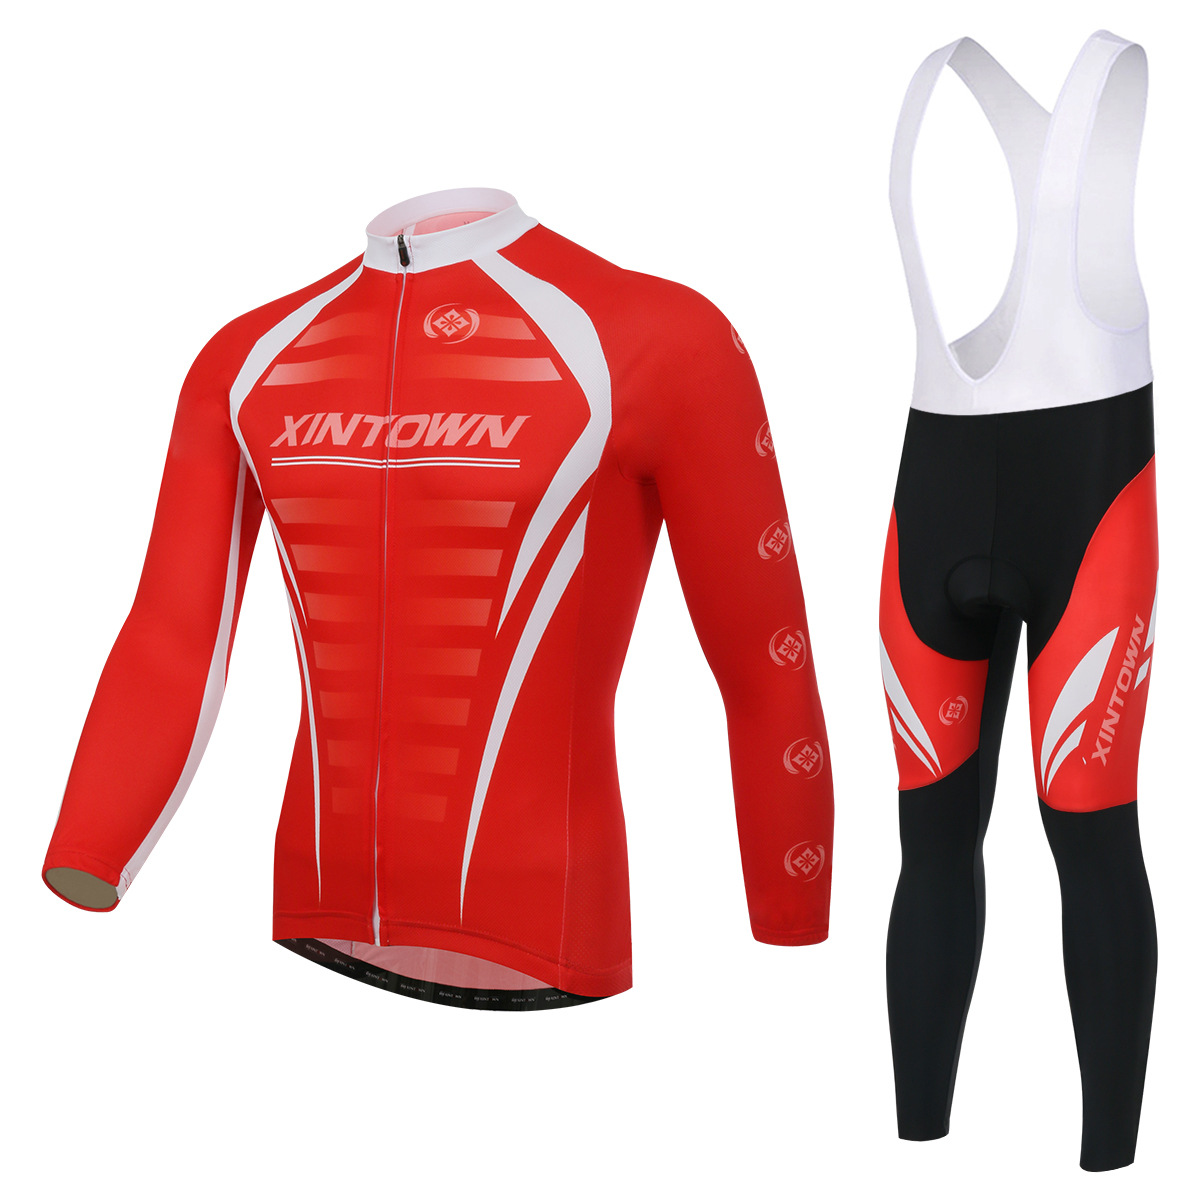 Cycling Set Long Sleeve Jersey and Bib Pants 3D Pad Pro Men Anti-sweatXINTOWN Red Ciclismo Bike Suit Bicicleta Bicycle Clothes